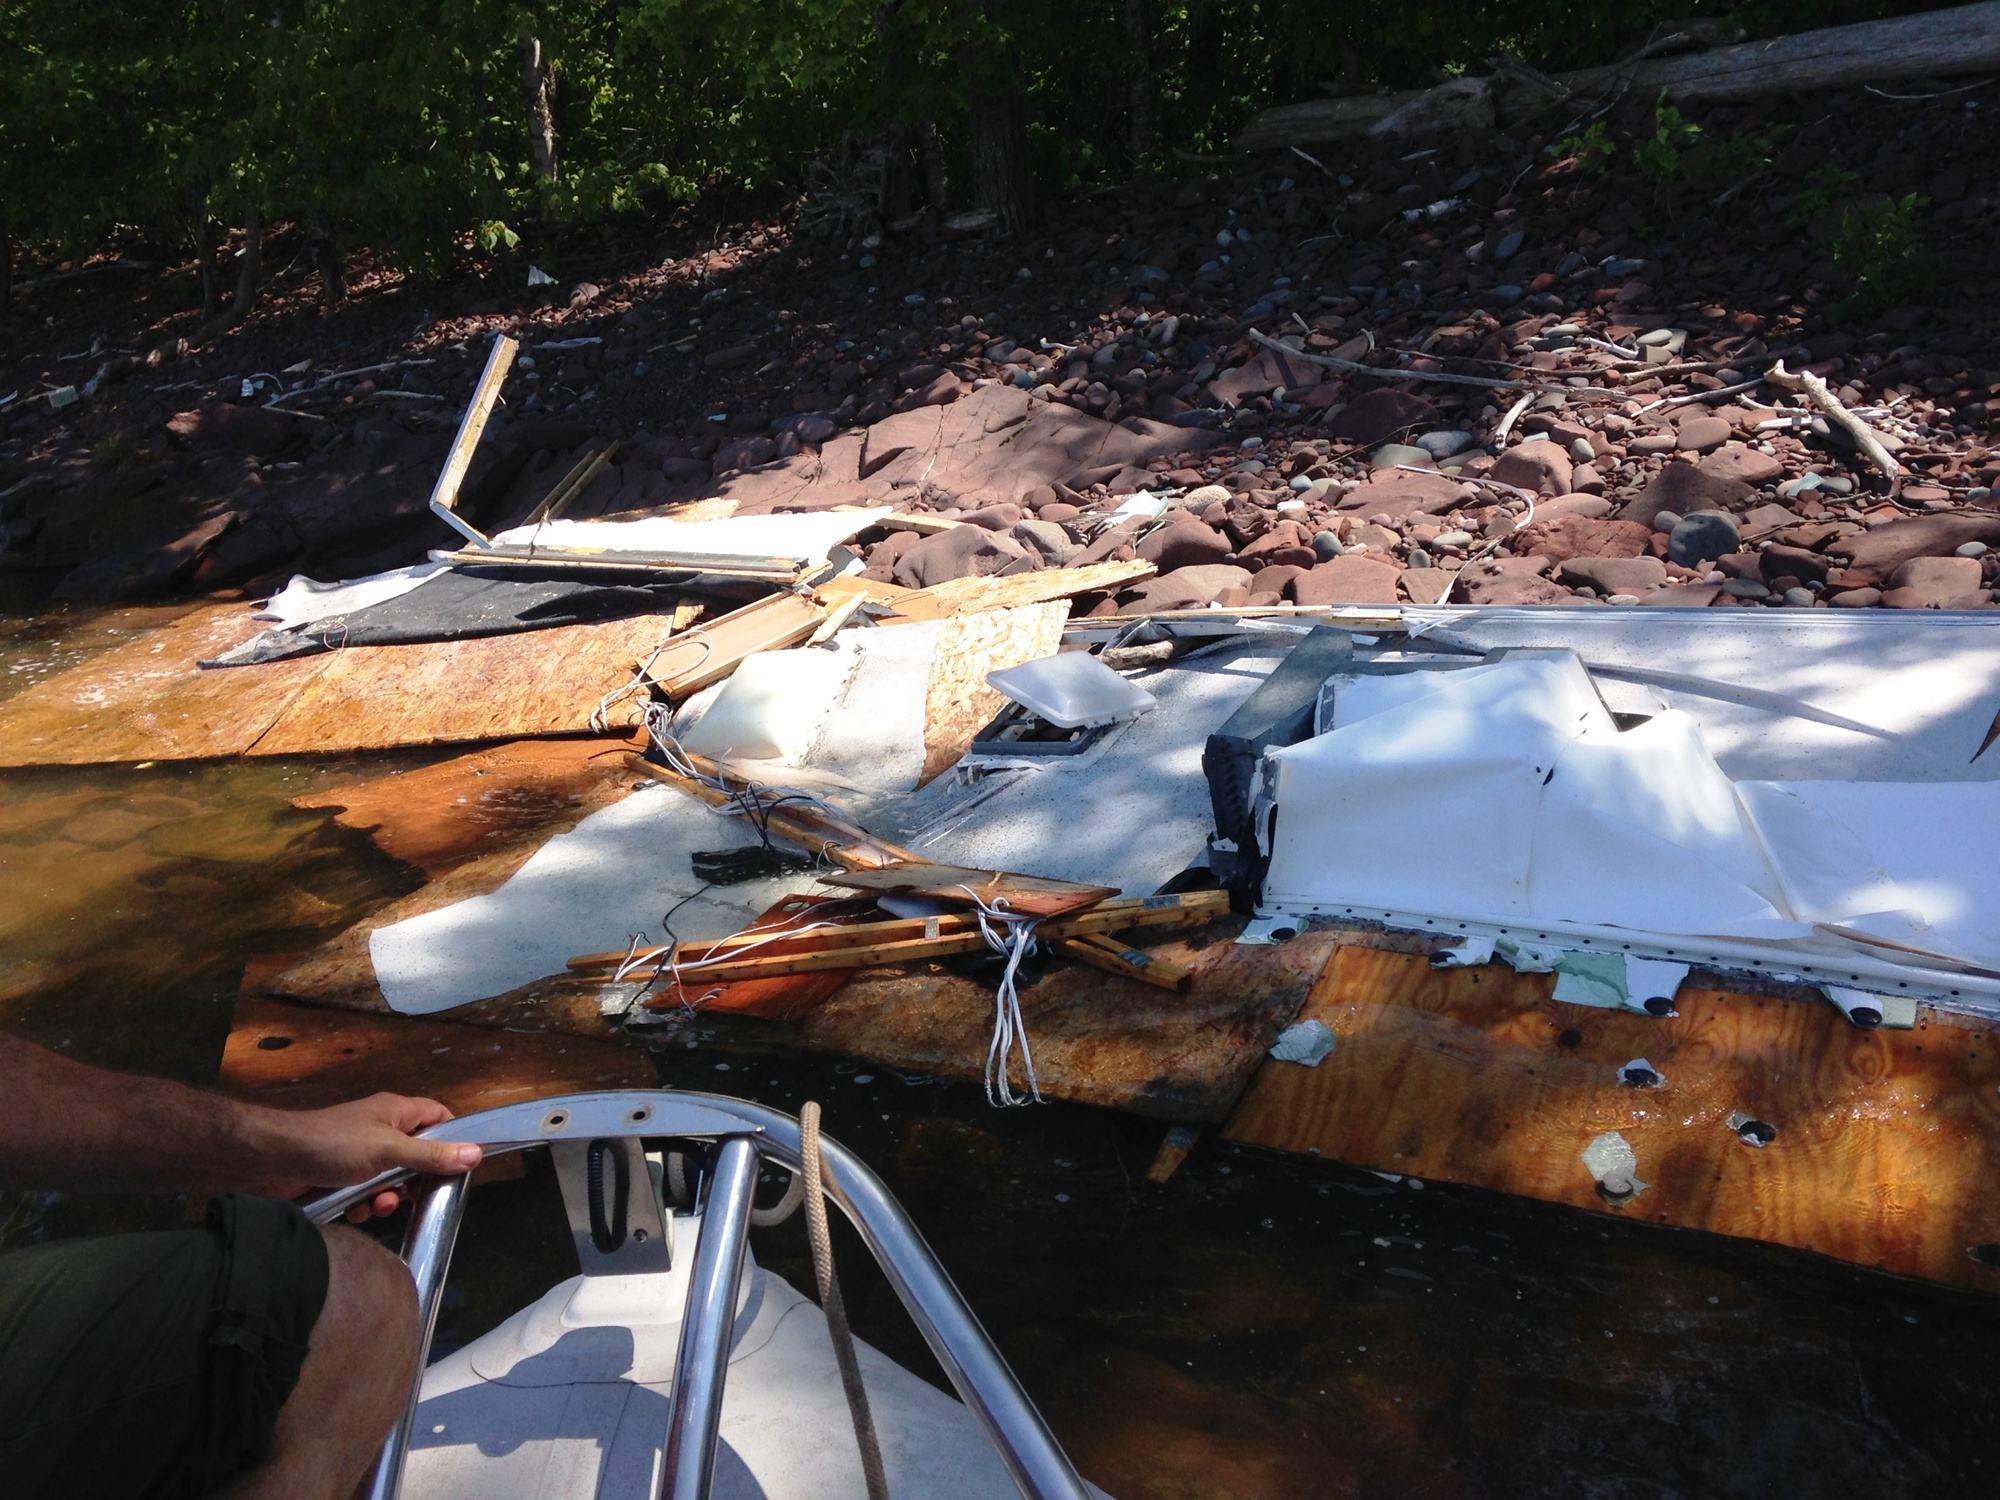 A trailer washed up on the shoreline of Porcupine Mountains Wilderness State Park, believed to be part of the recent storm damage at Saxon Harbor.